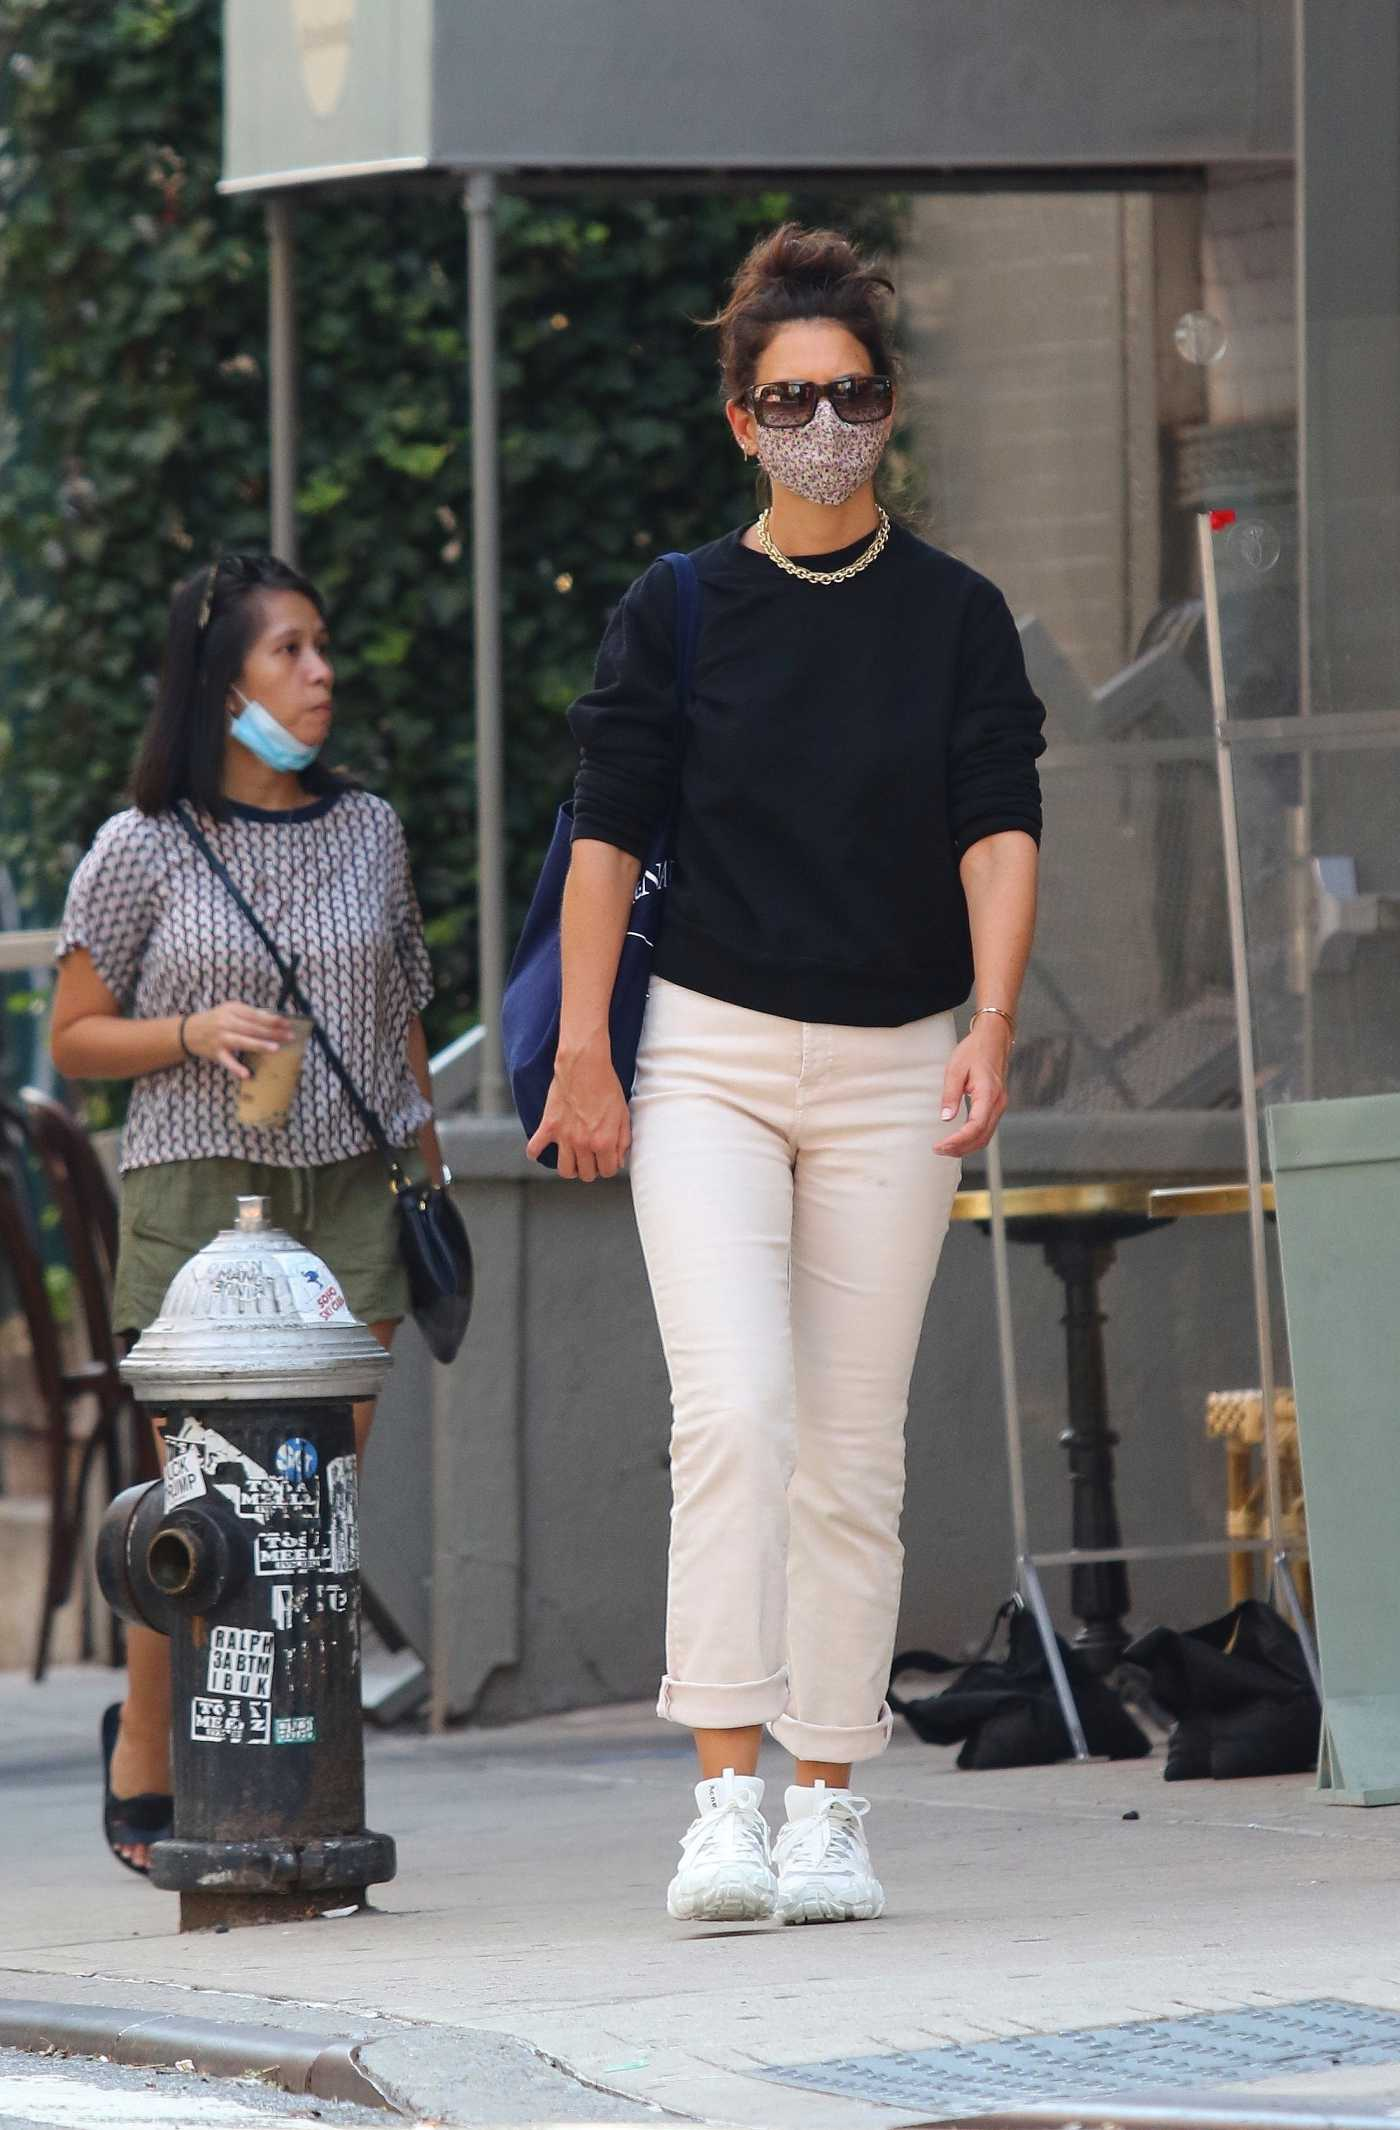 Katie Holmes in a White Sneakers Leaves the Acne Studios Store in Downtown Manhattan 08/09/2020